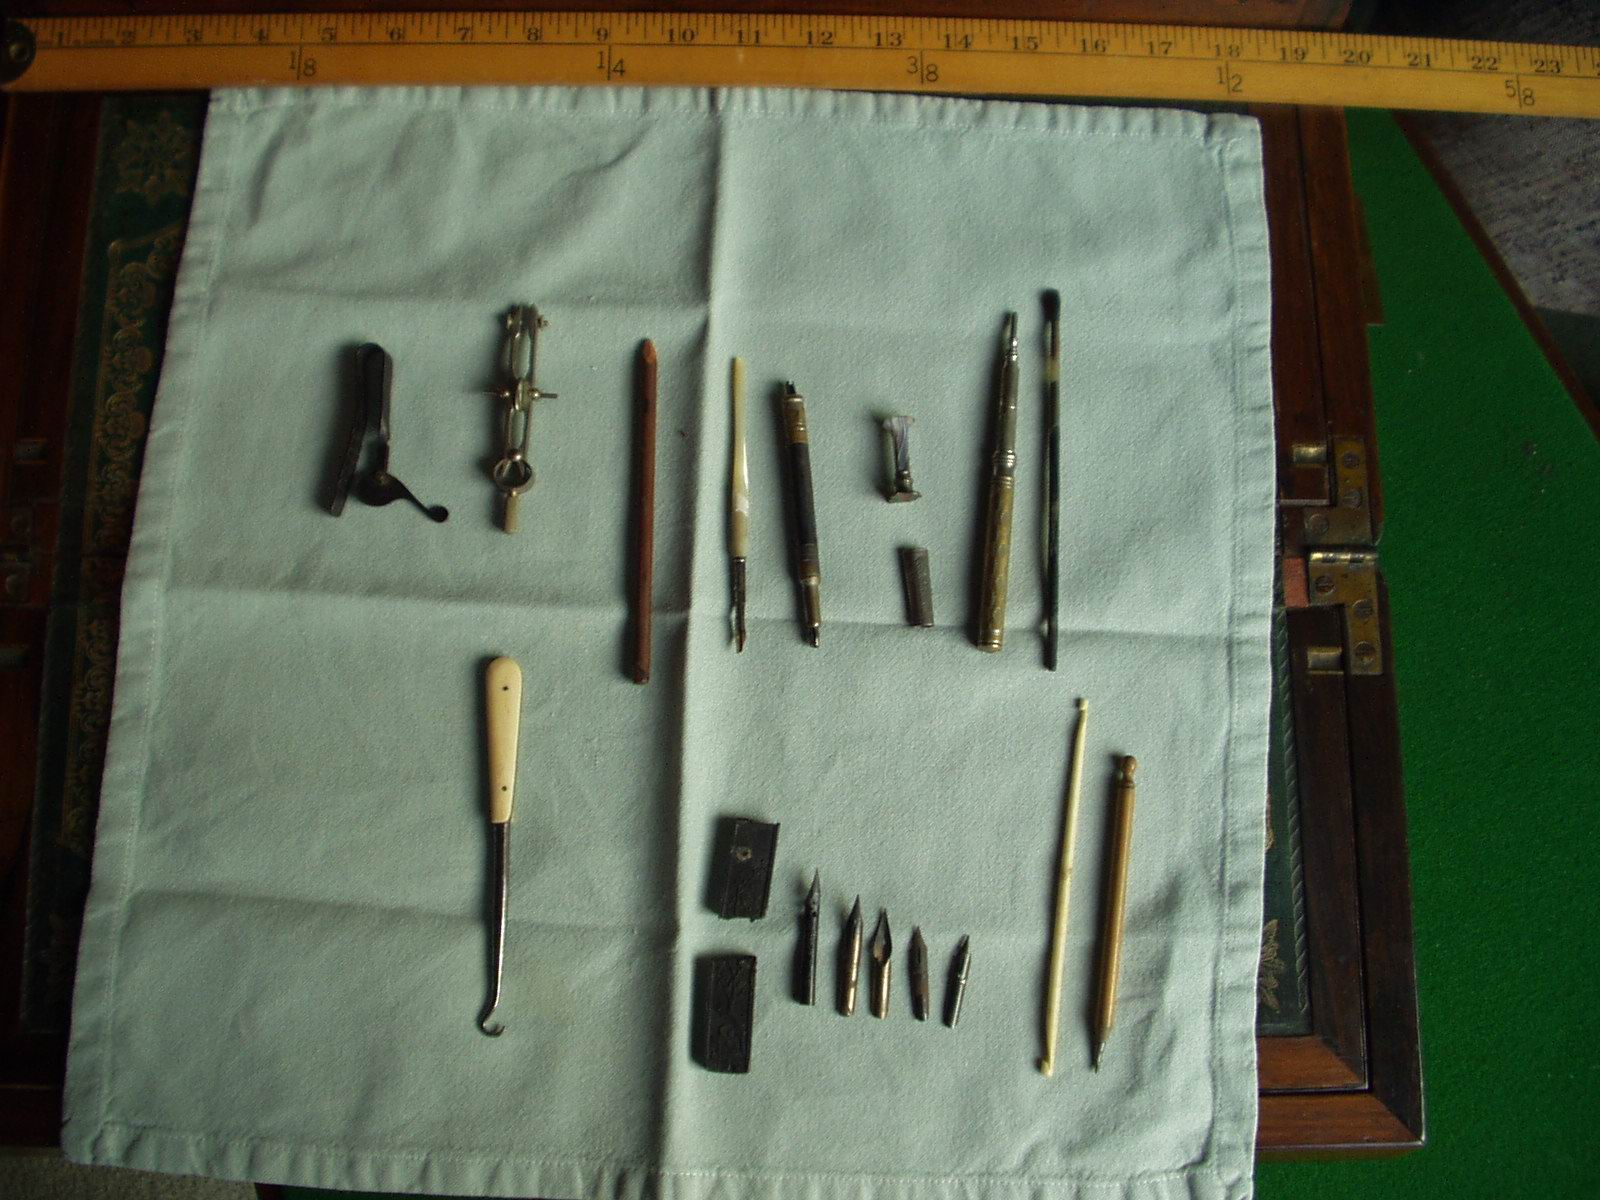 Writing desk tools